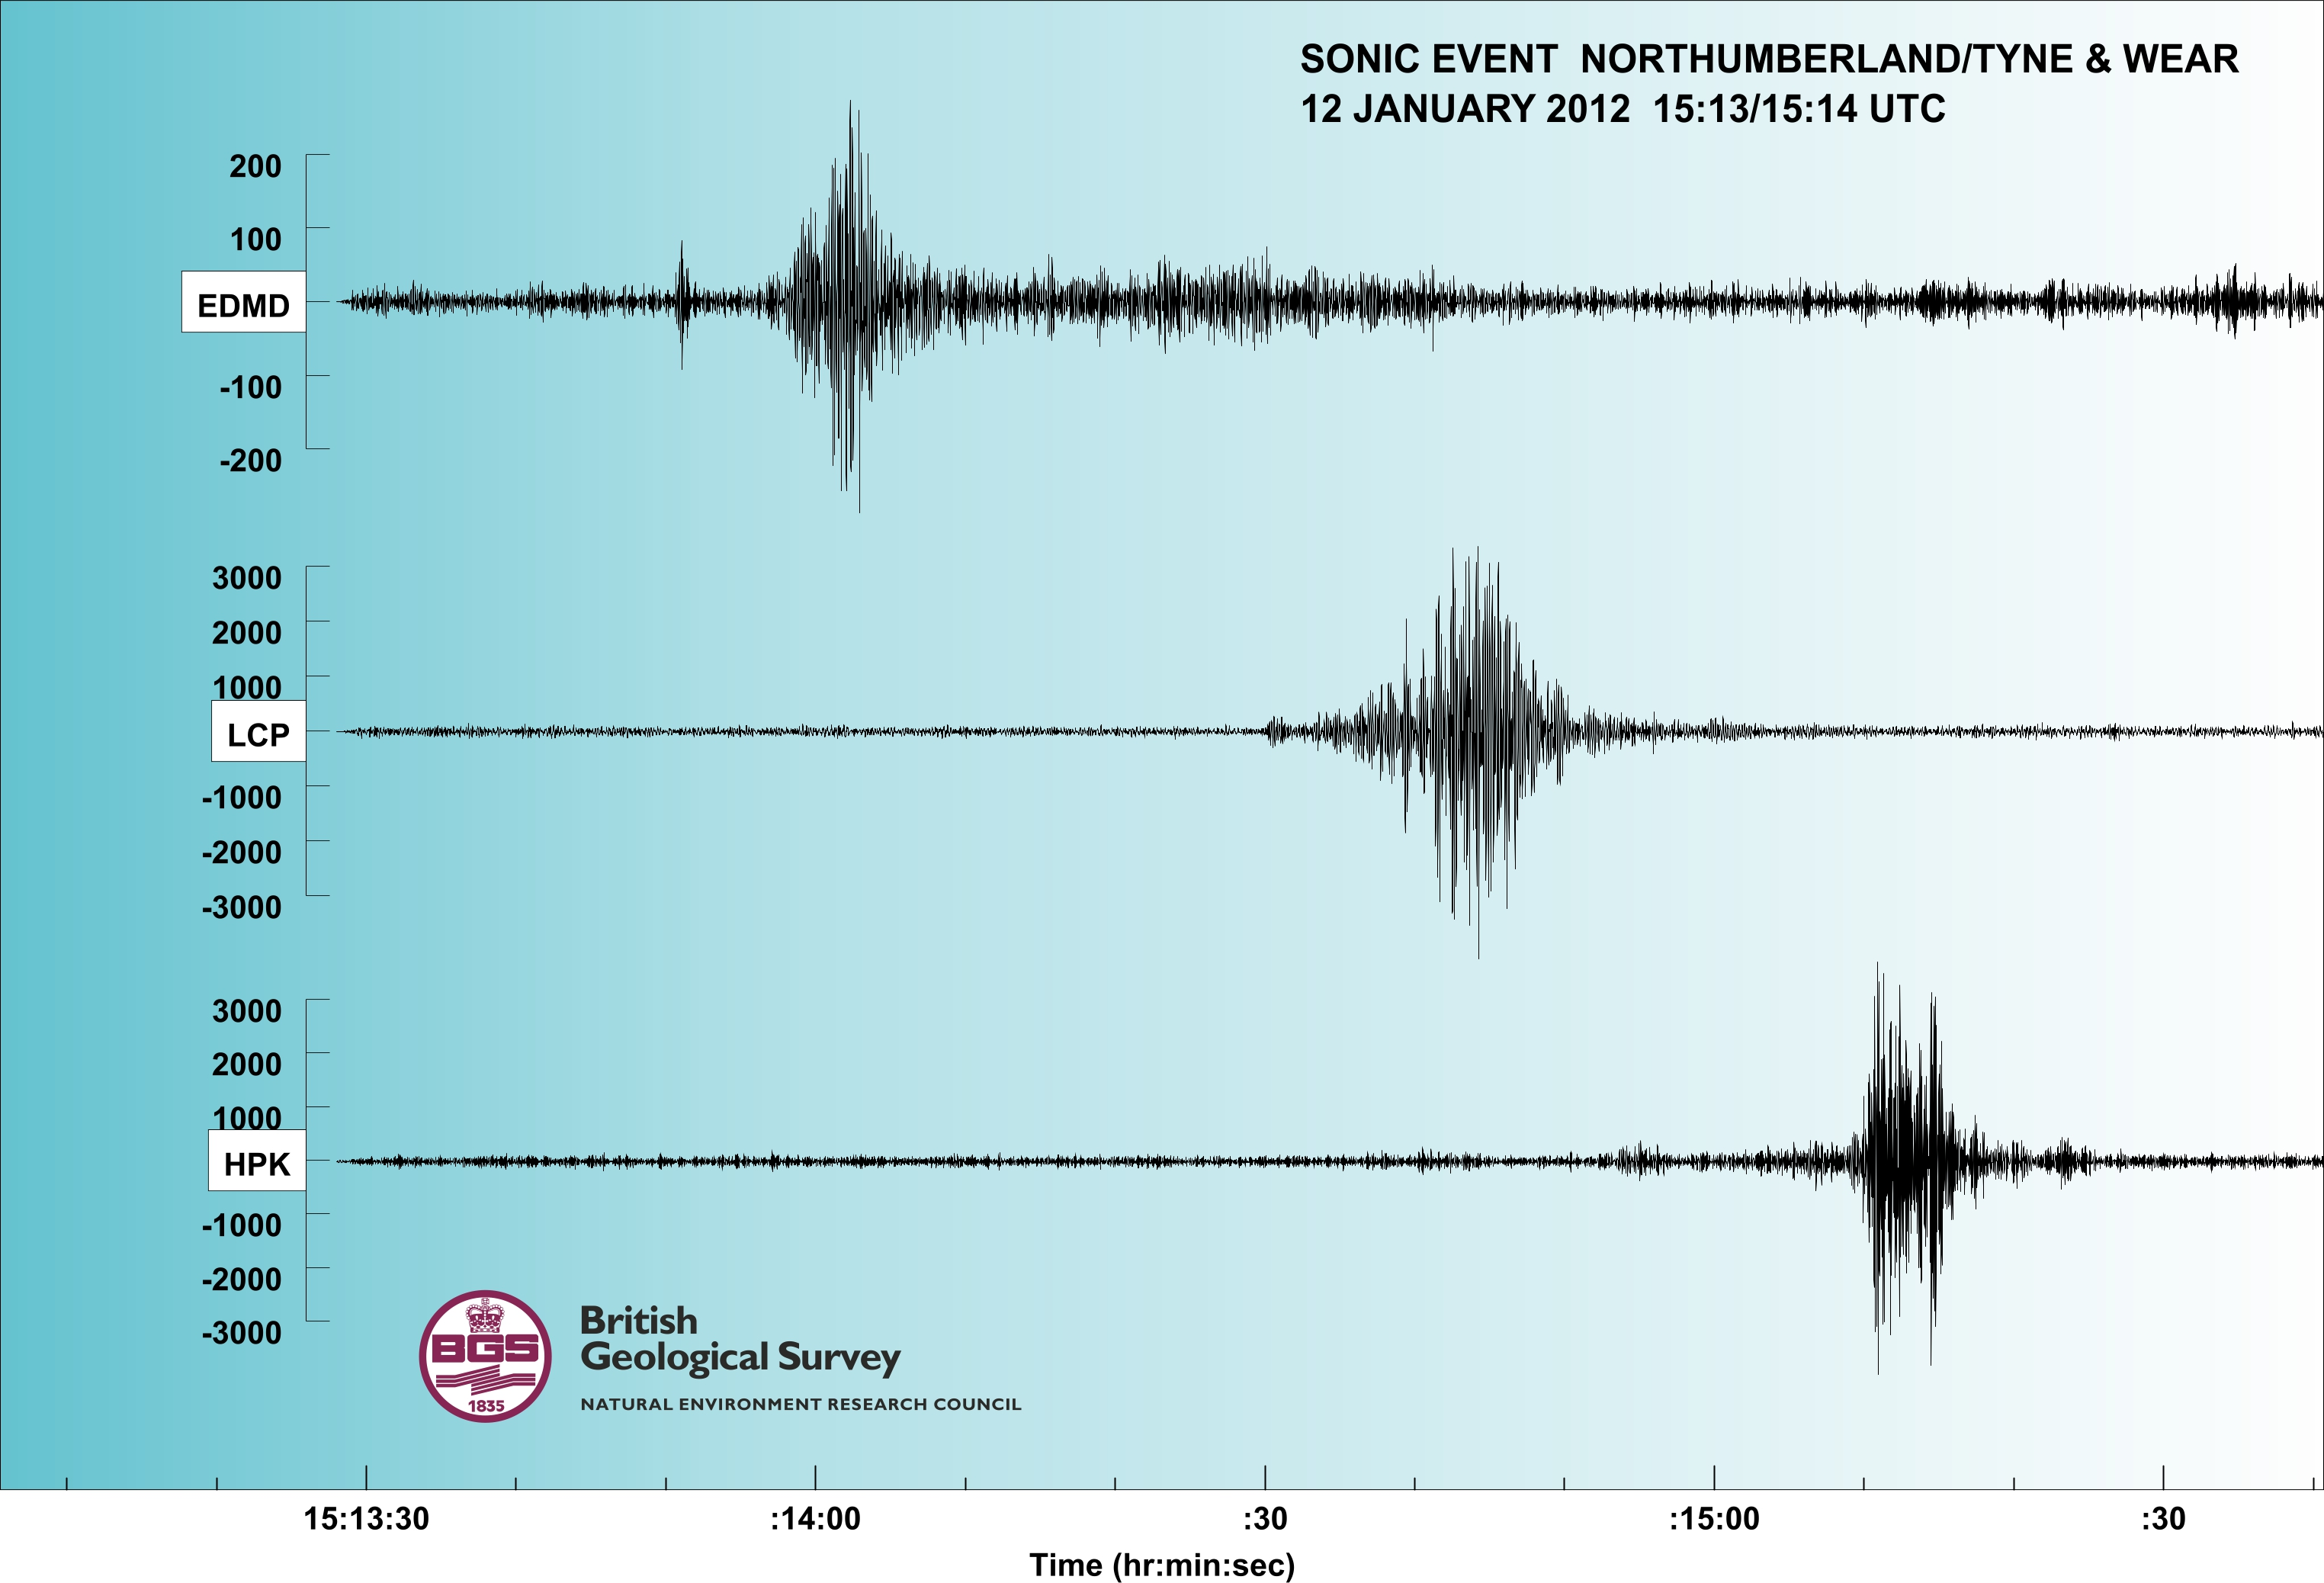 Seismograms of the sonic event as recorded on nearby BGS seismometers. CLICK FOR A LARGER VERSION